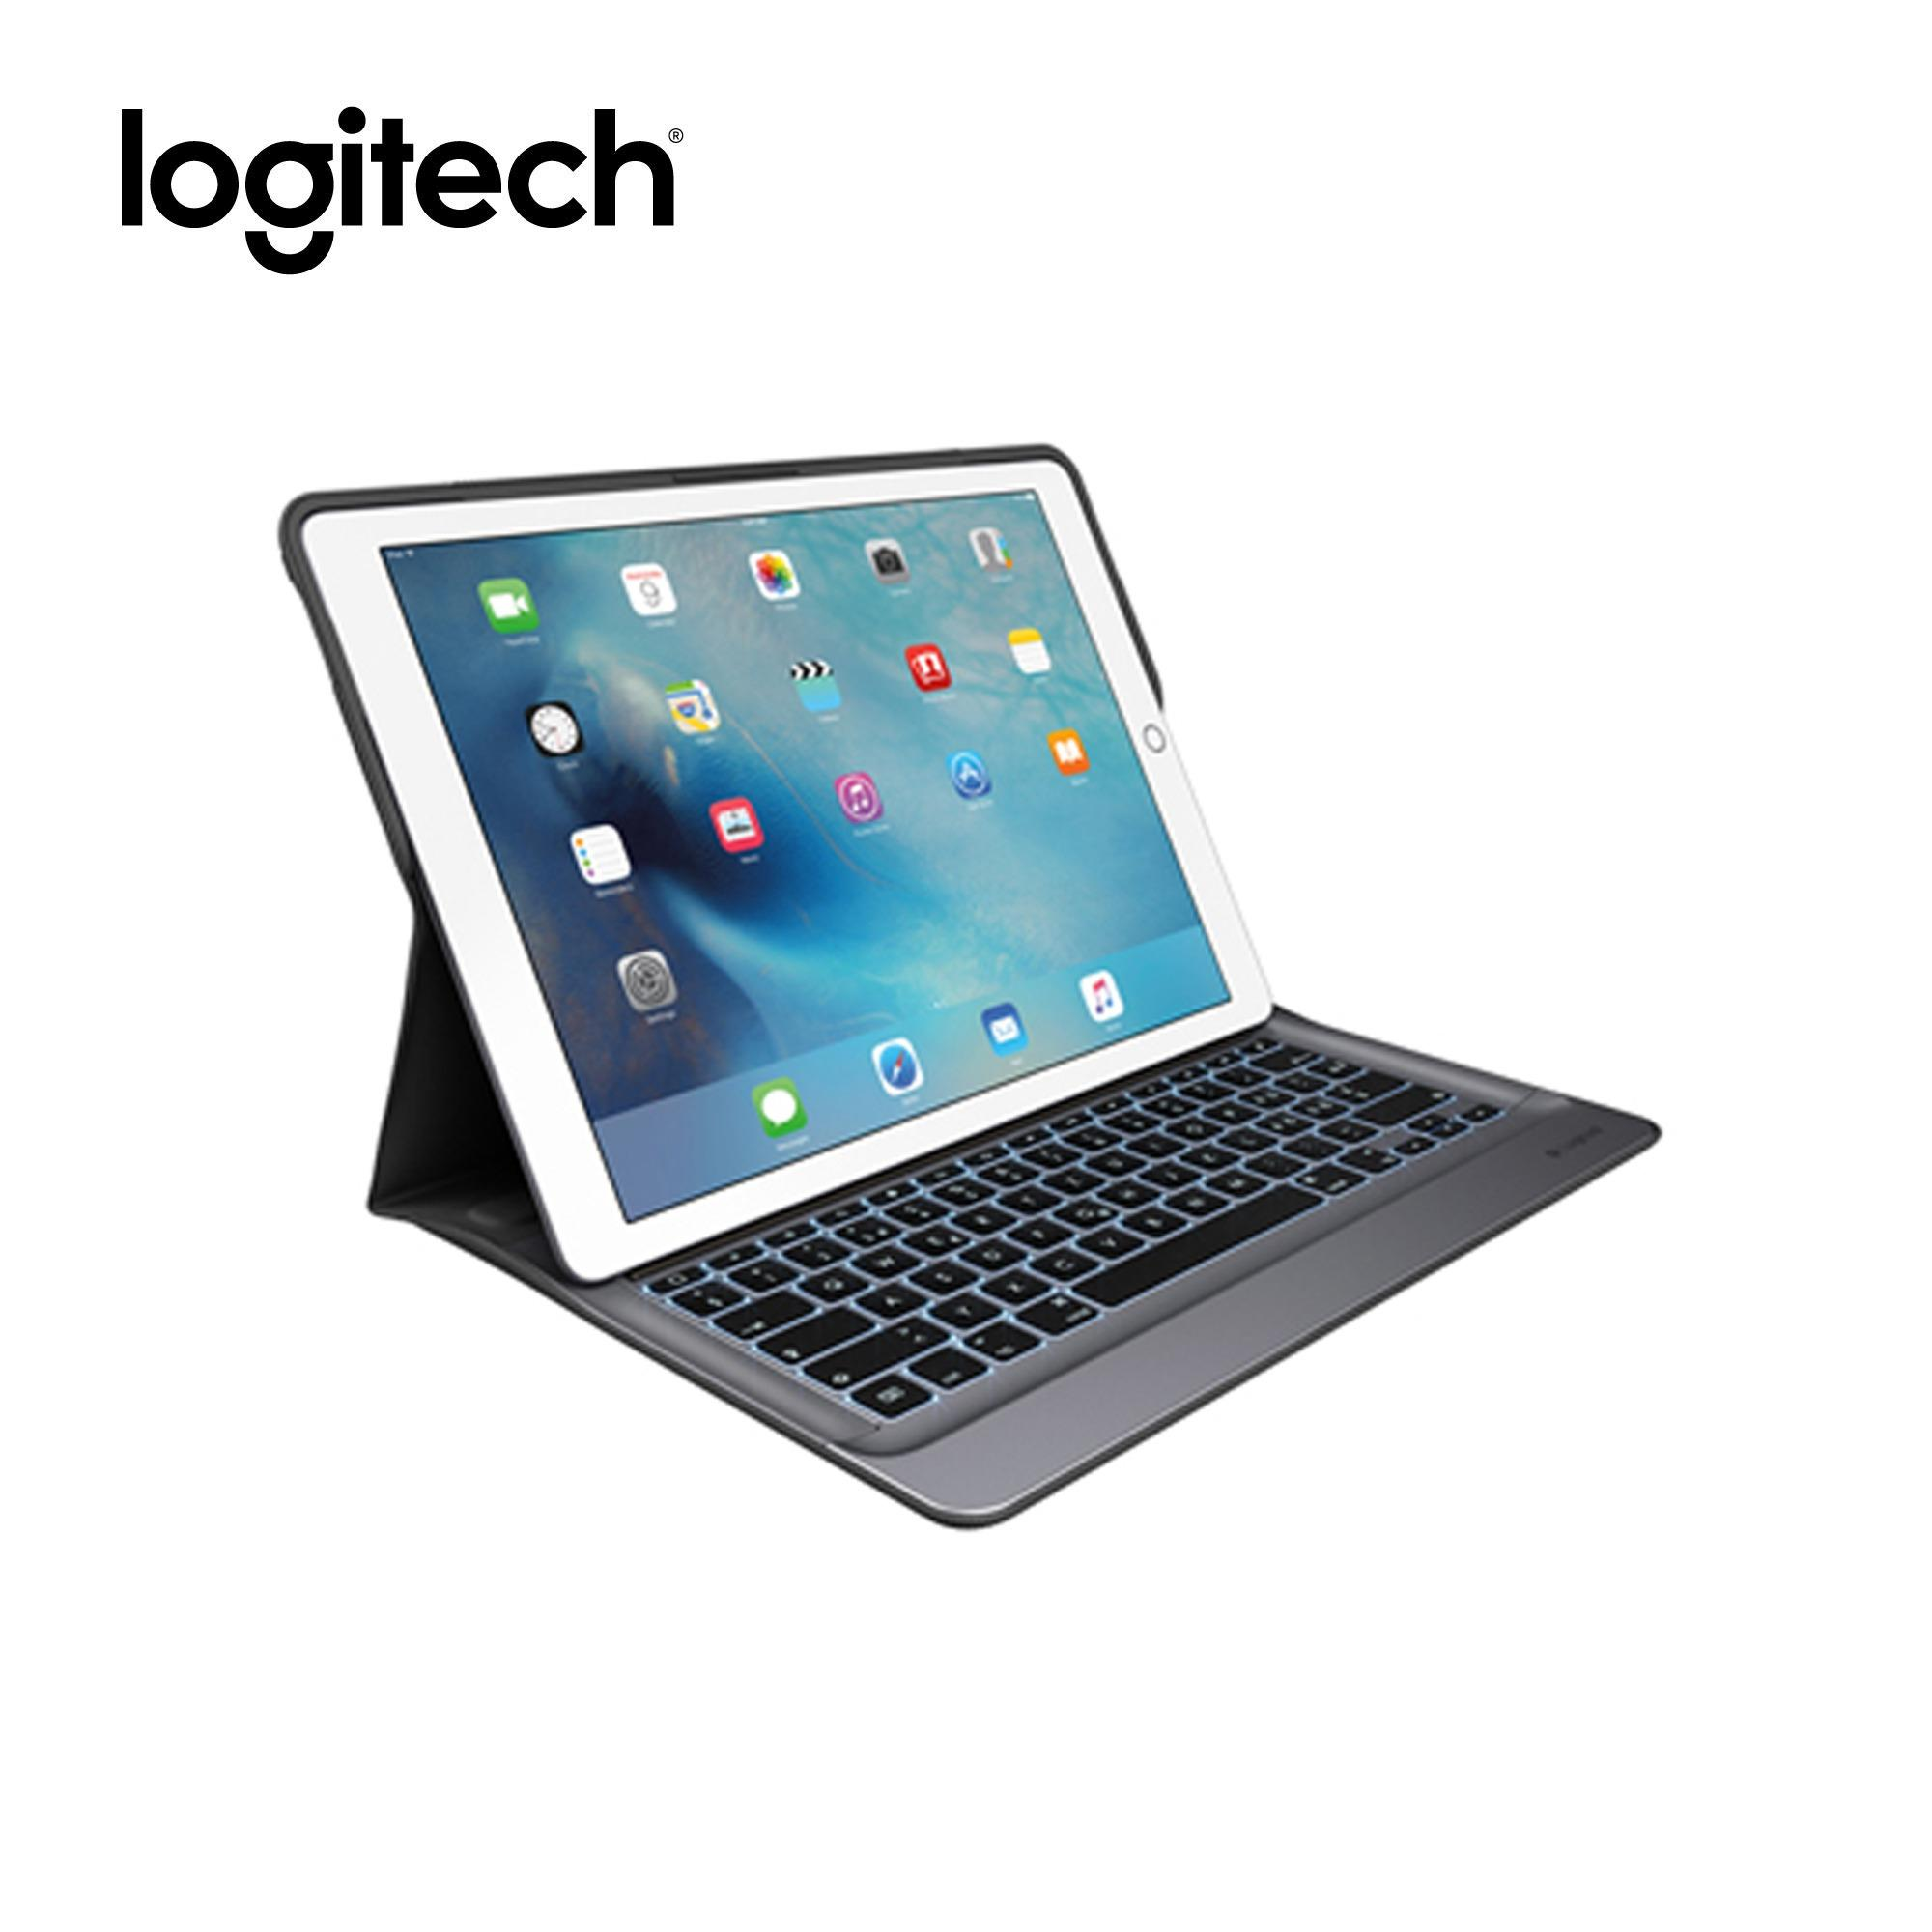 4966a52332bf4 Logitech Create Backlit Keyboard Case with Smart Connector for iPad Pro  12.9